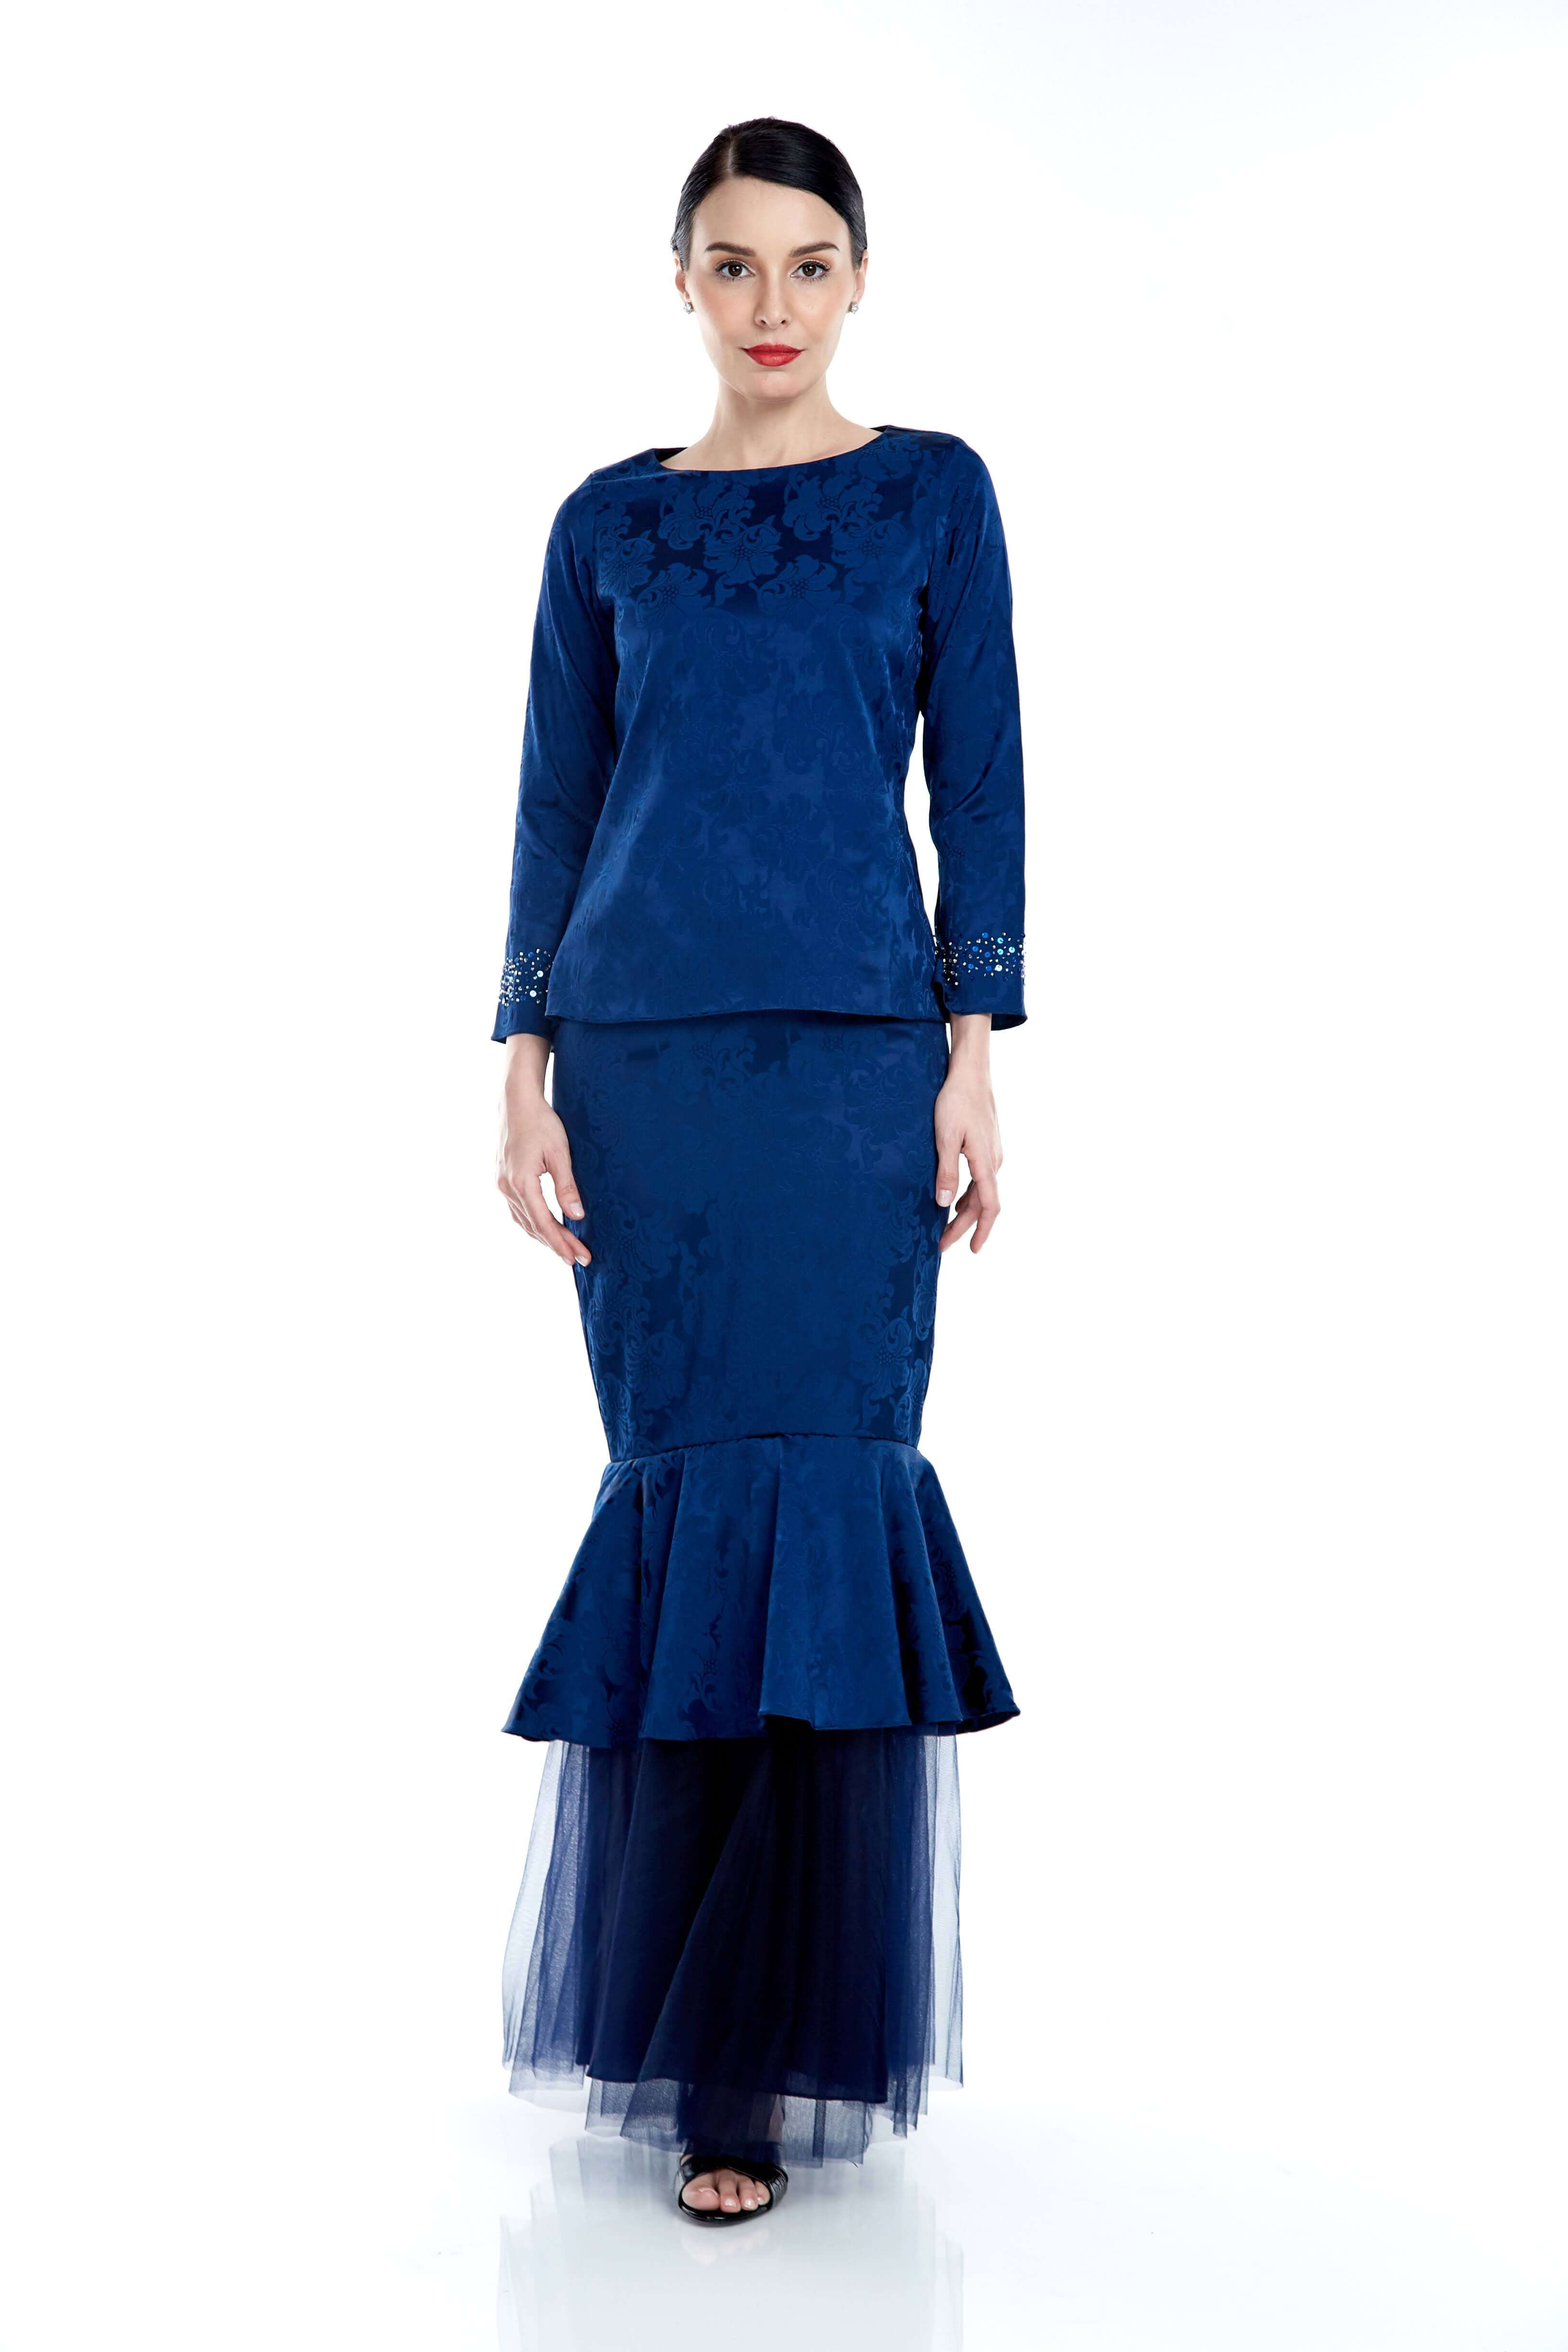 Navy Round Neck Top With Beading On Sleeve (4)